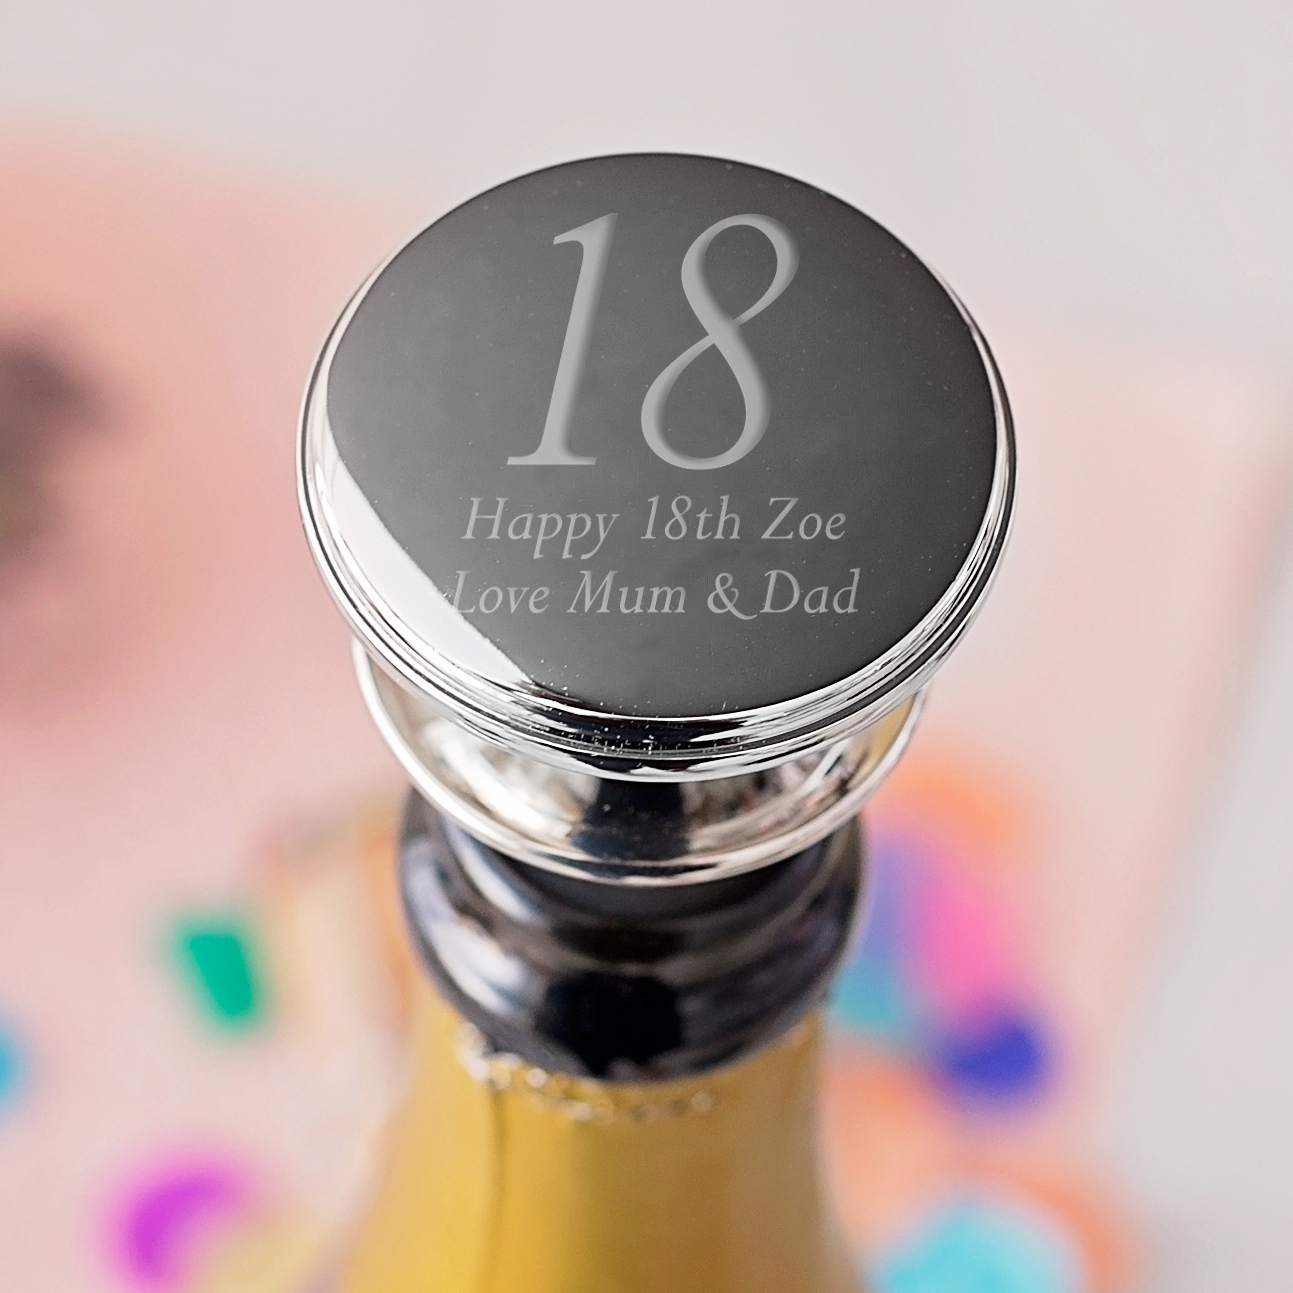 18th Birthday Personalised Wine Bottle Stopper - 18th gift